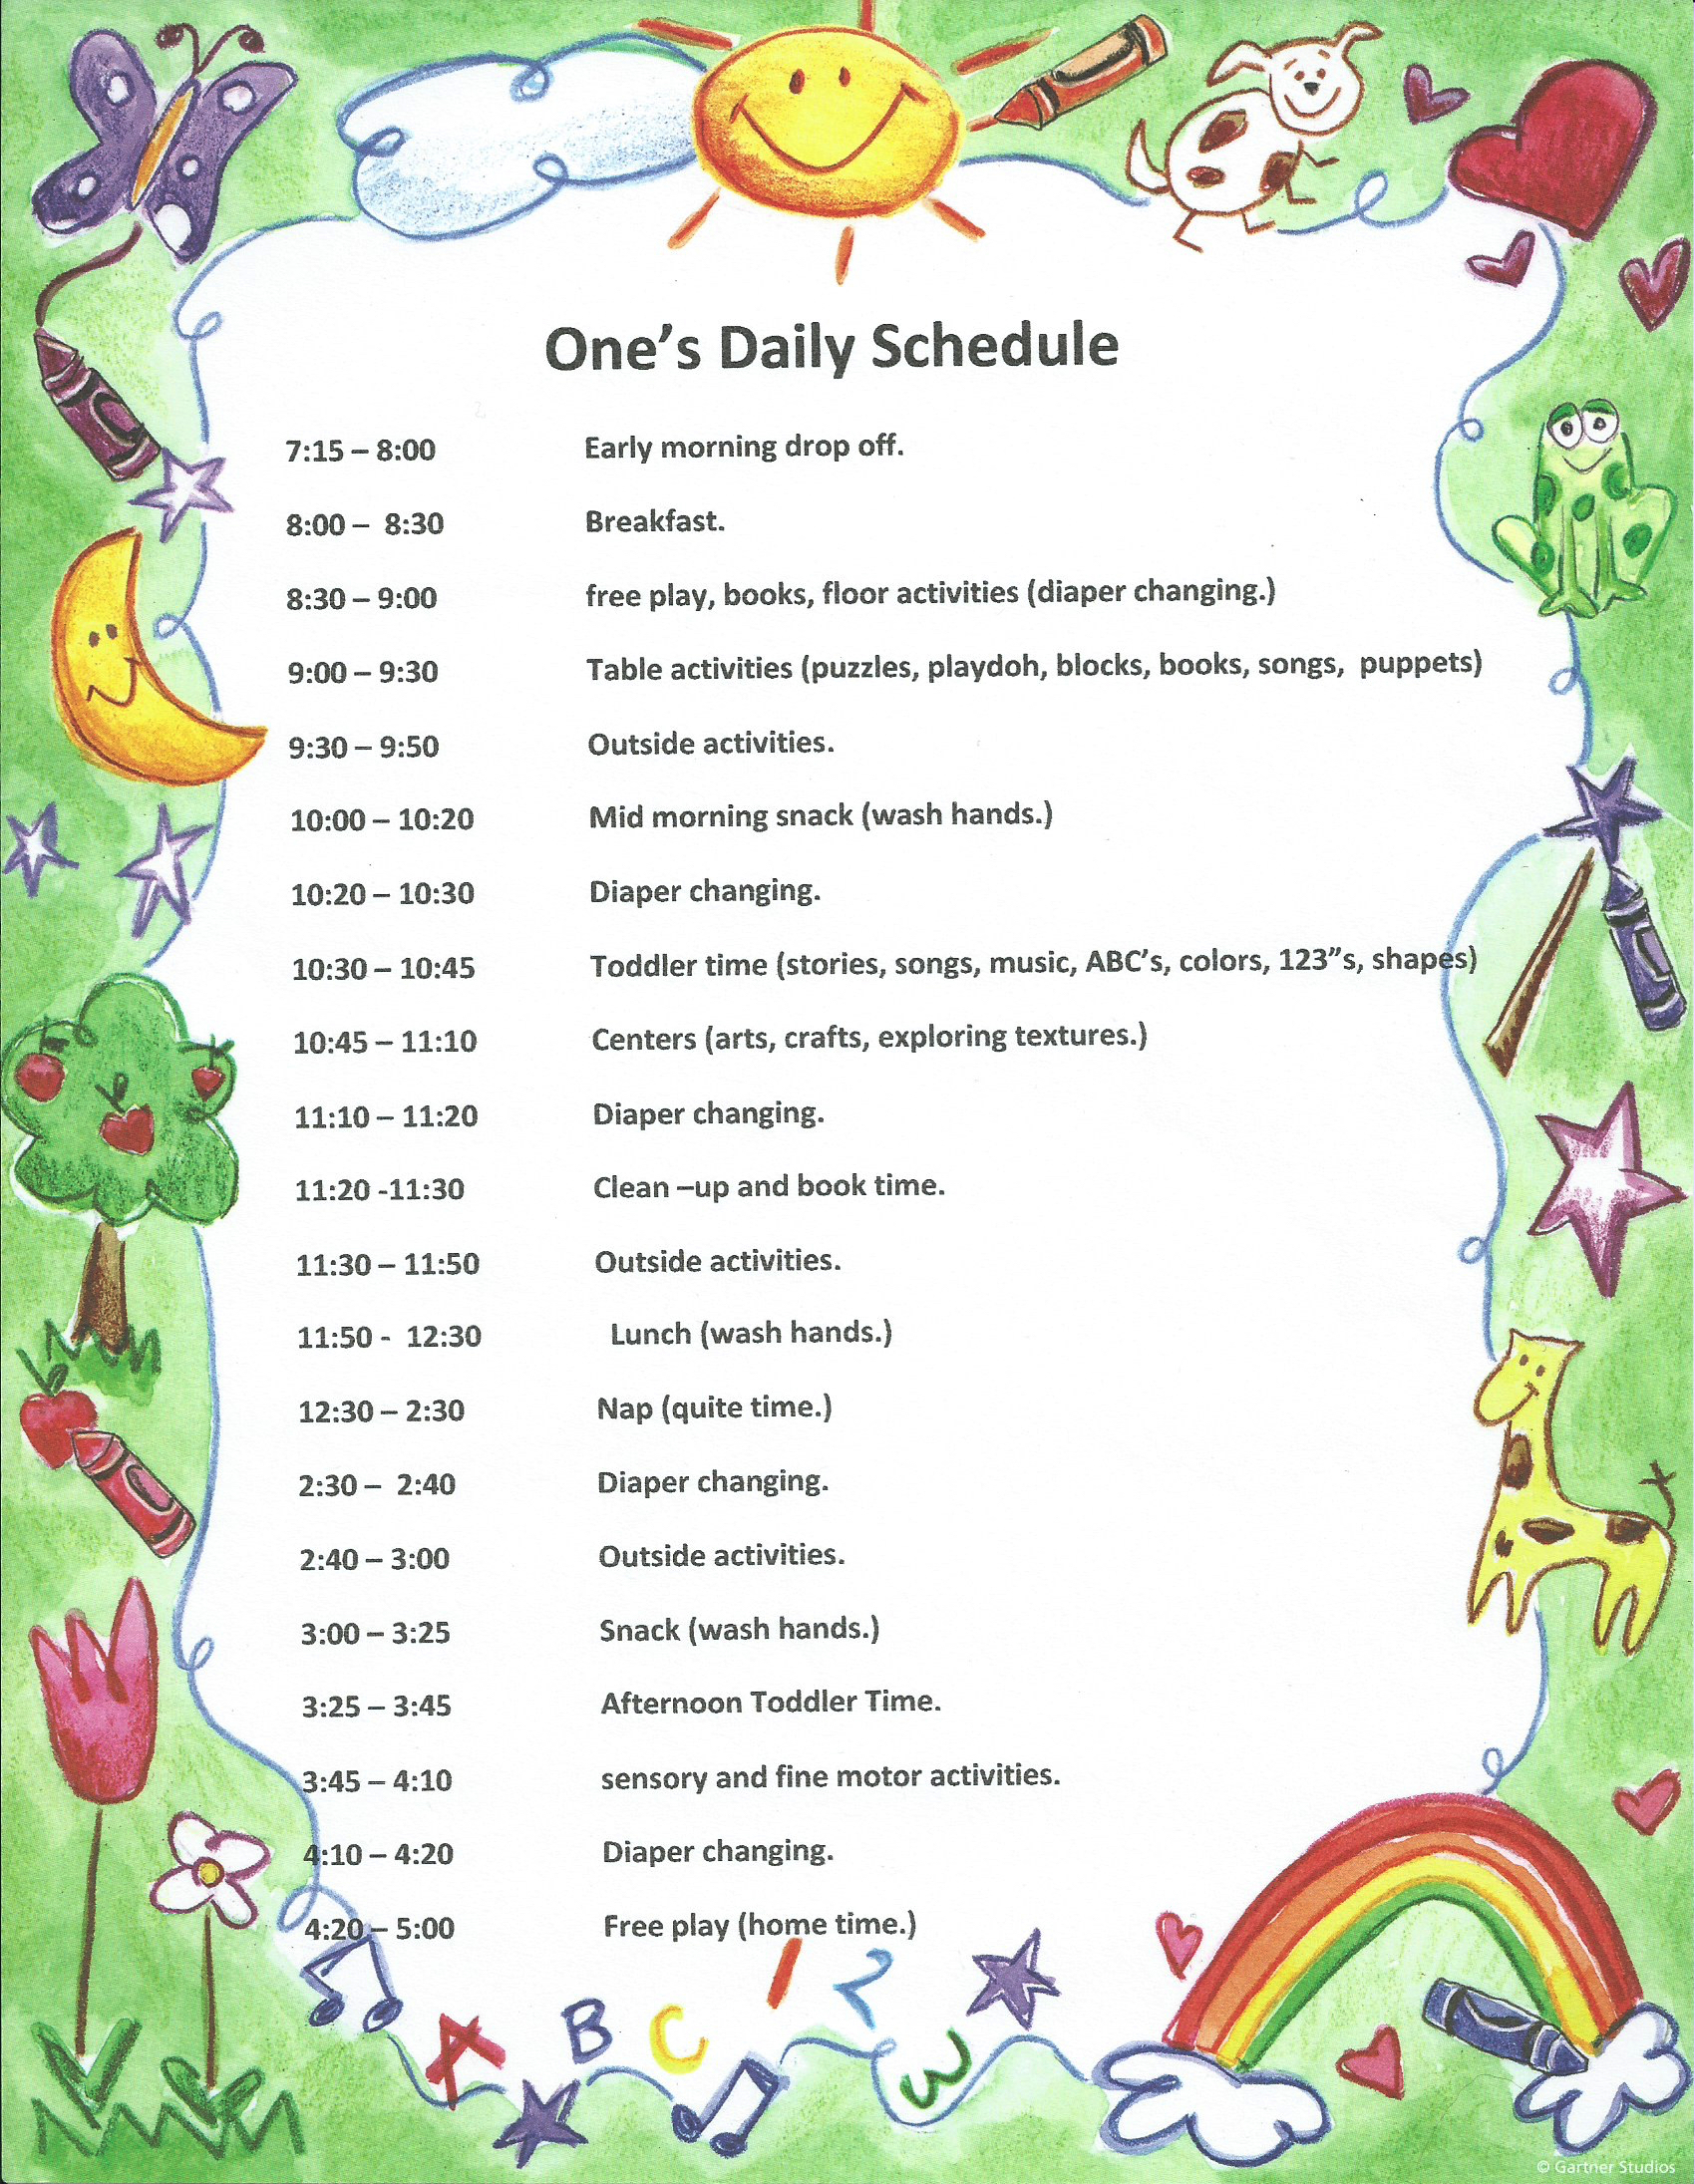 Two's Daily Schedule